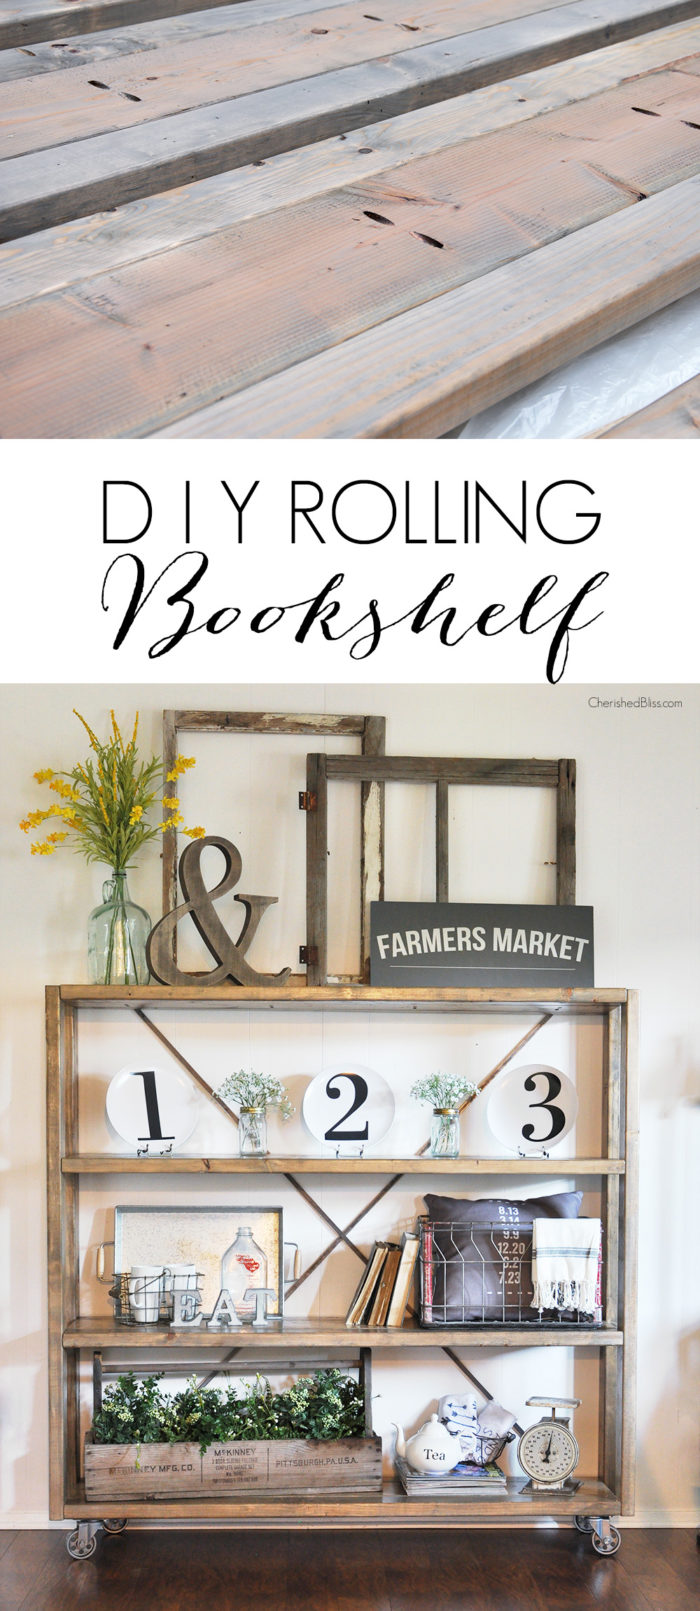 Rolling Diy Bookshelf Restoration Hardware Knockoff